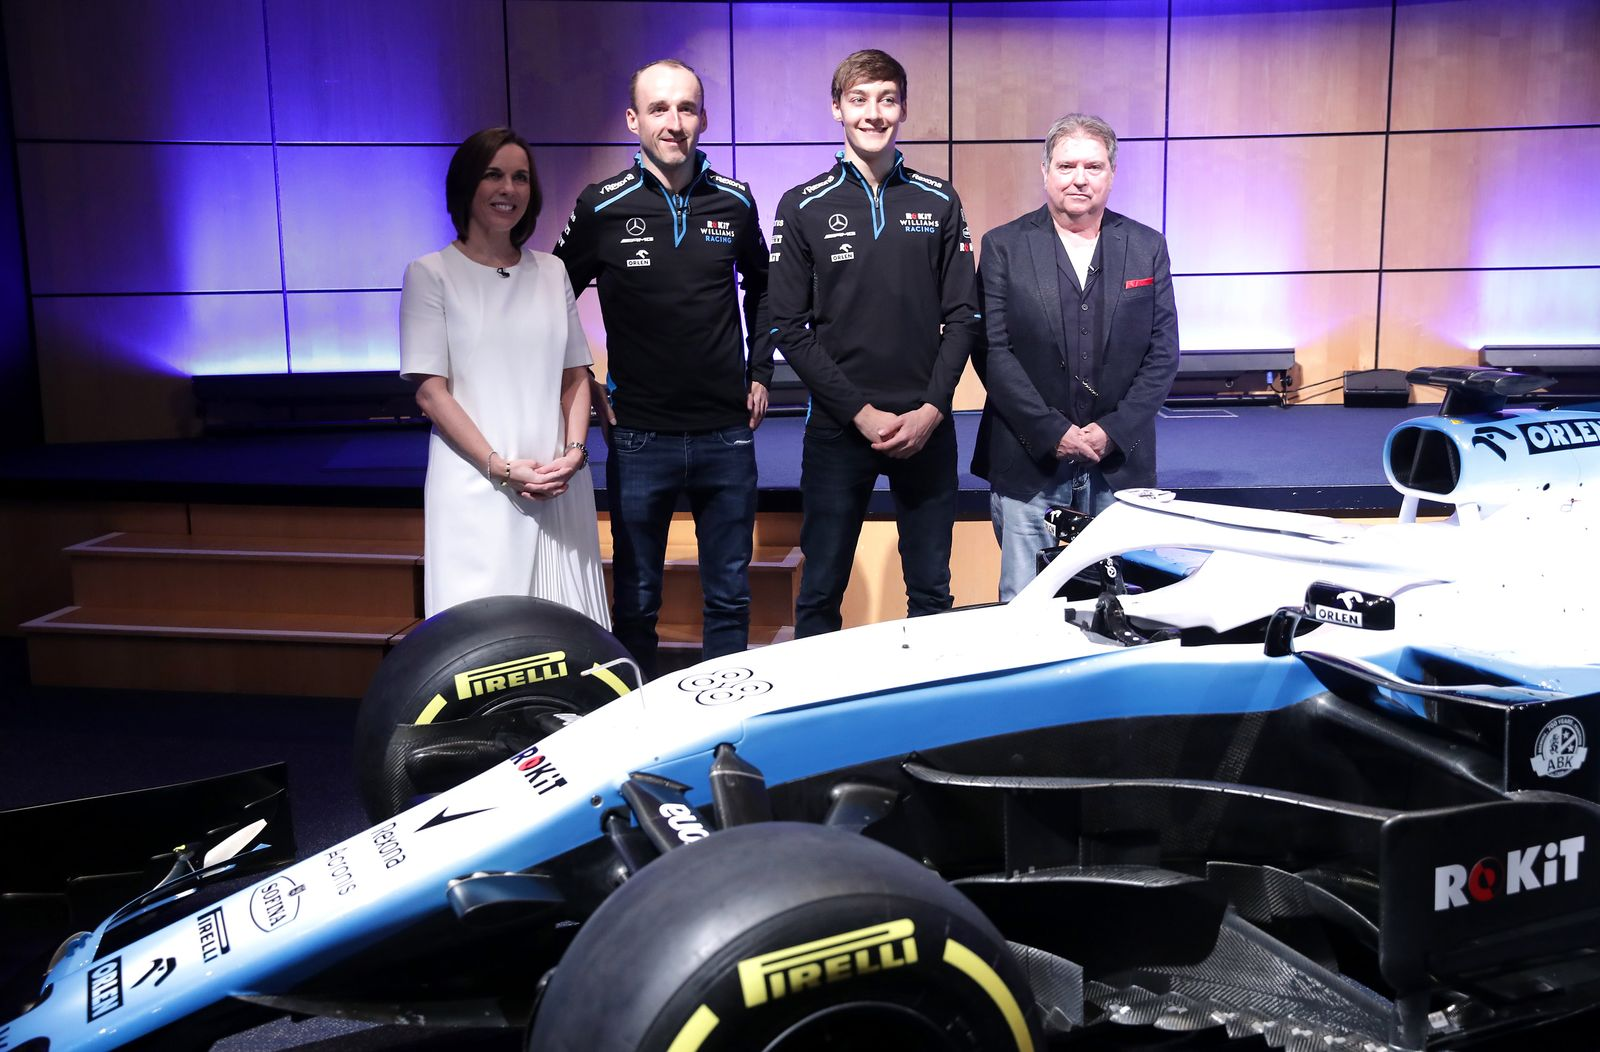 Williams 2019 Livery Launch - Williams Conference Centre